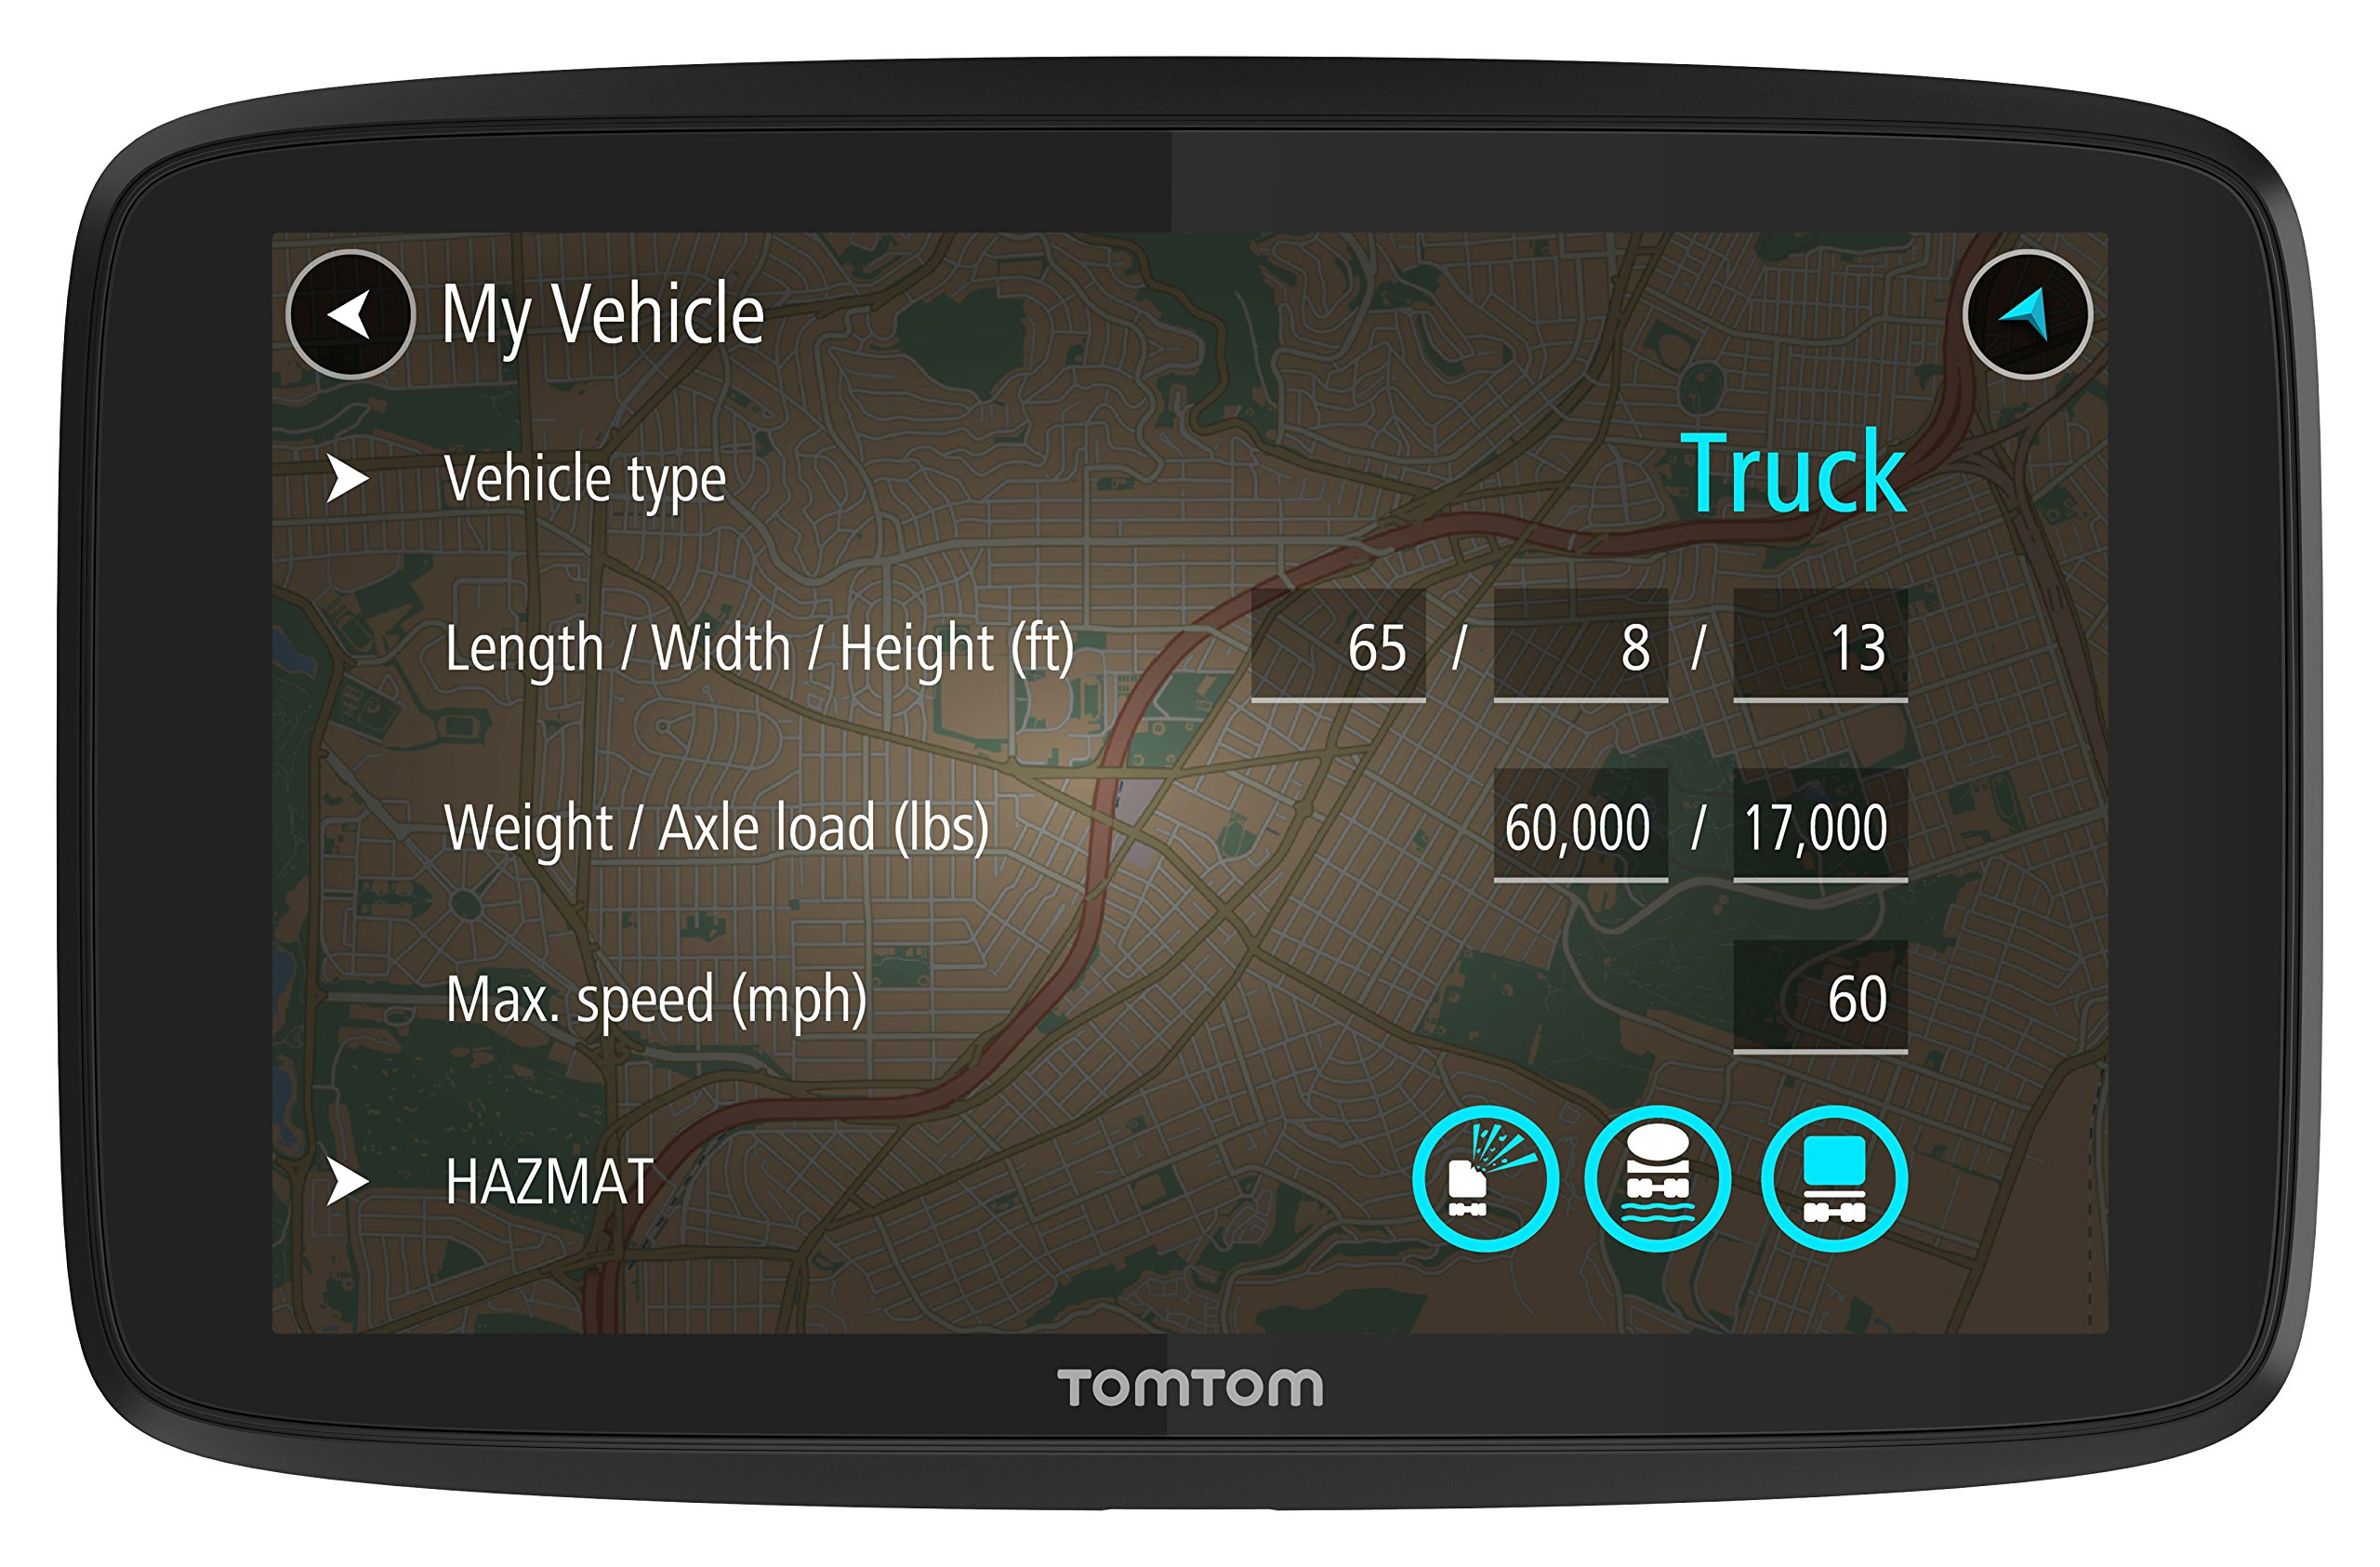 TomTom Trucker 620 6-Inch GPS Navigation Device for Trucks with Wi-Fi Connectivity, Smartphone Services, and Free Lifetime Traffic and Maps of North America by TomTom